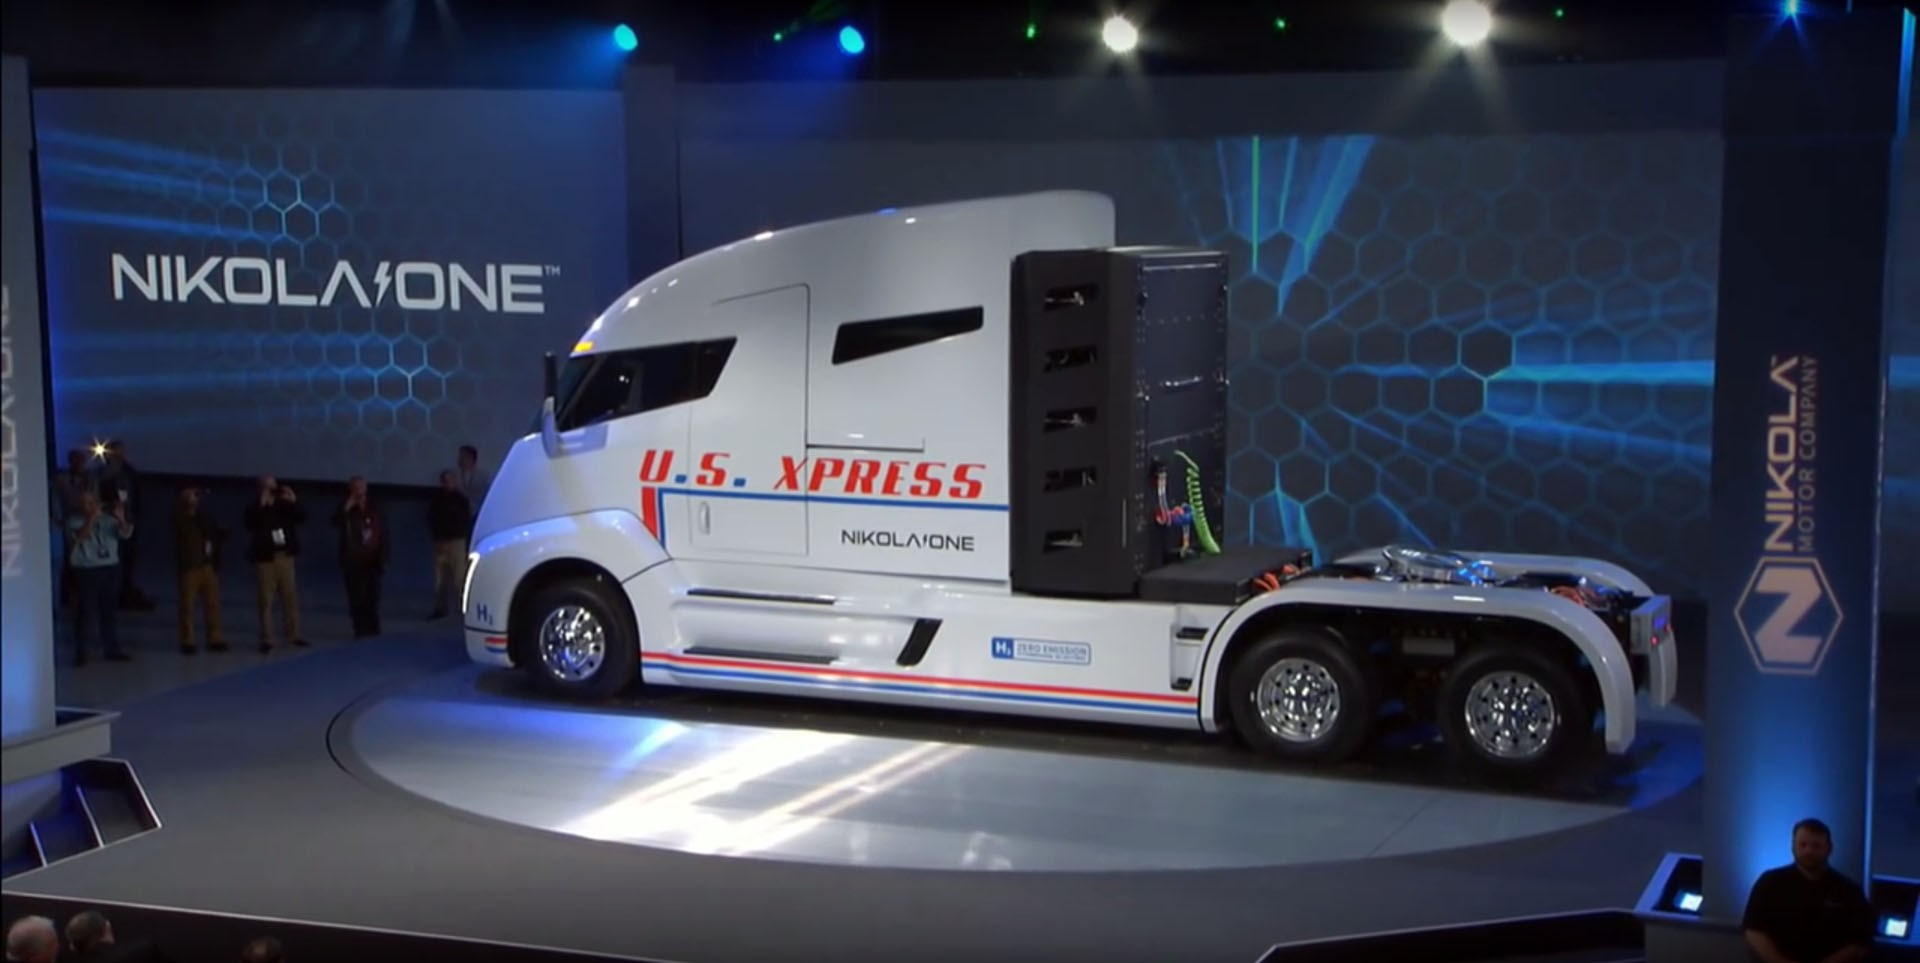 Nikola begins electric semitruck war, hits Tesla with $2 billion patent suit